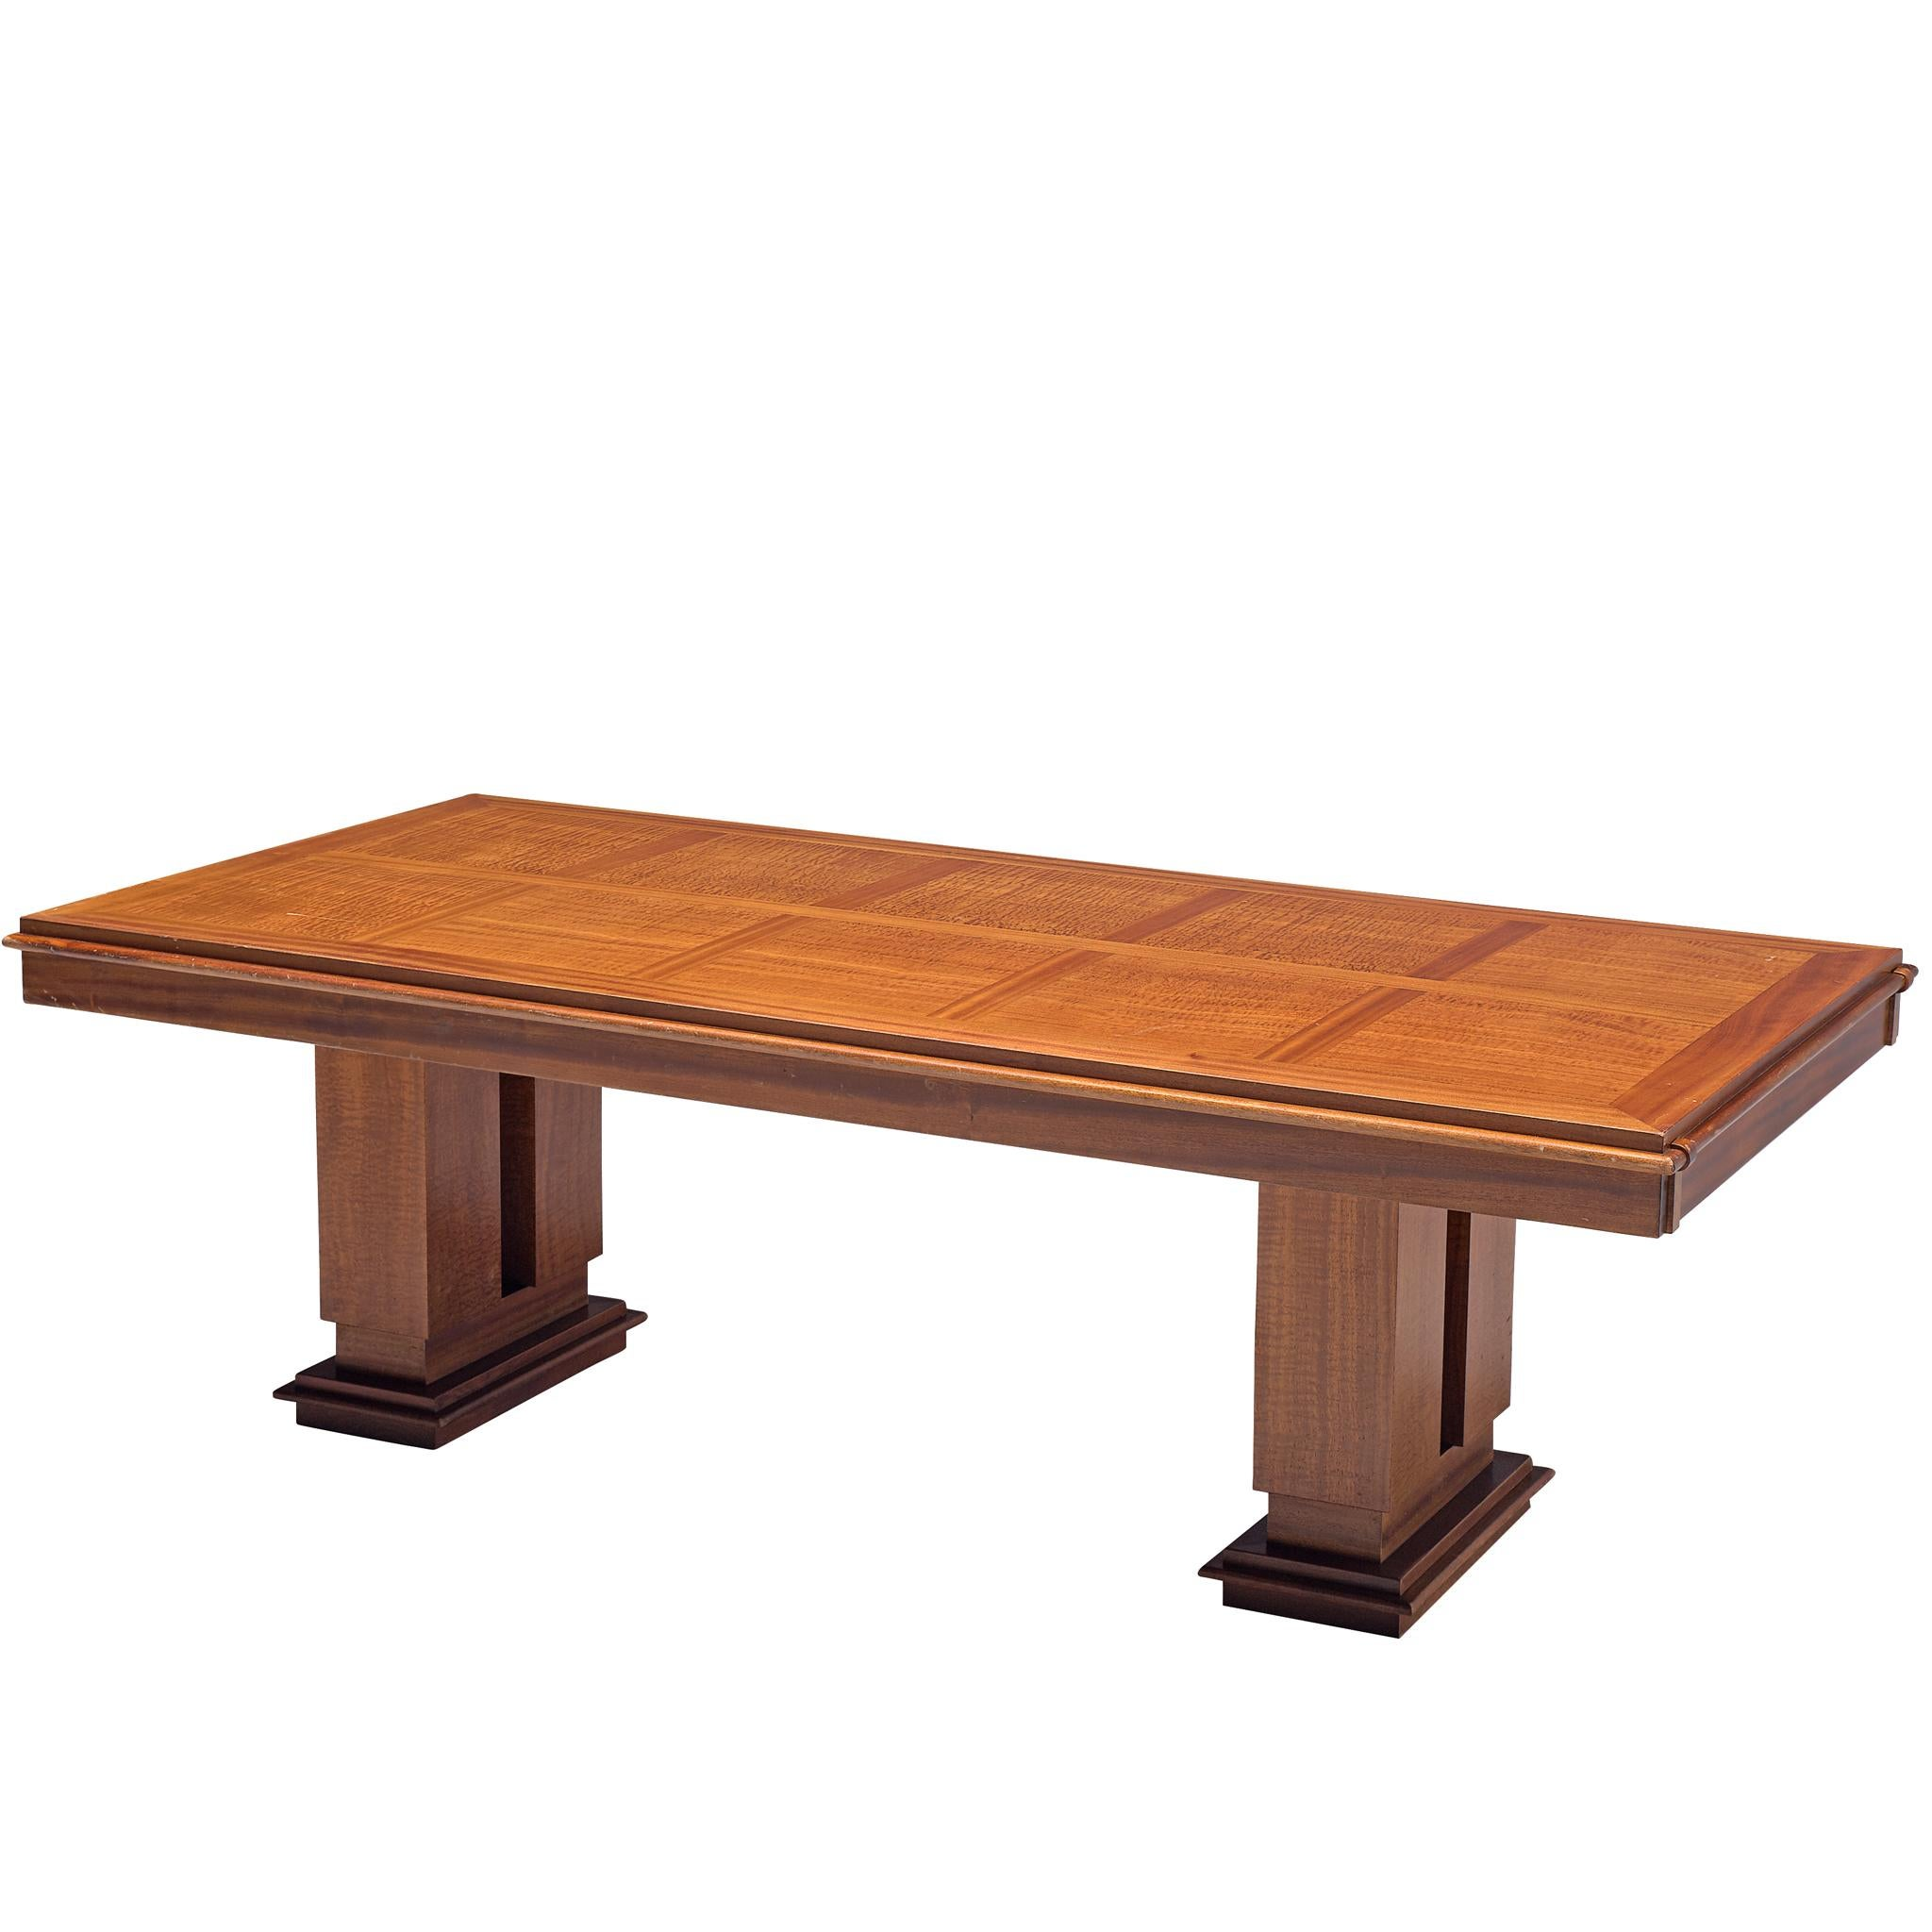 large art deco table with wooden inlay tabletop